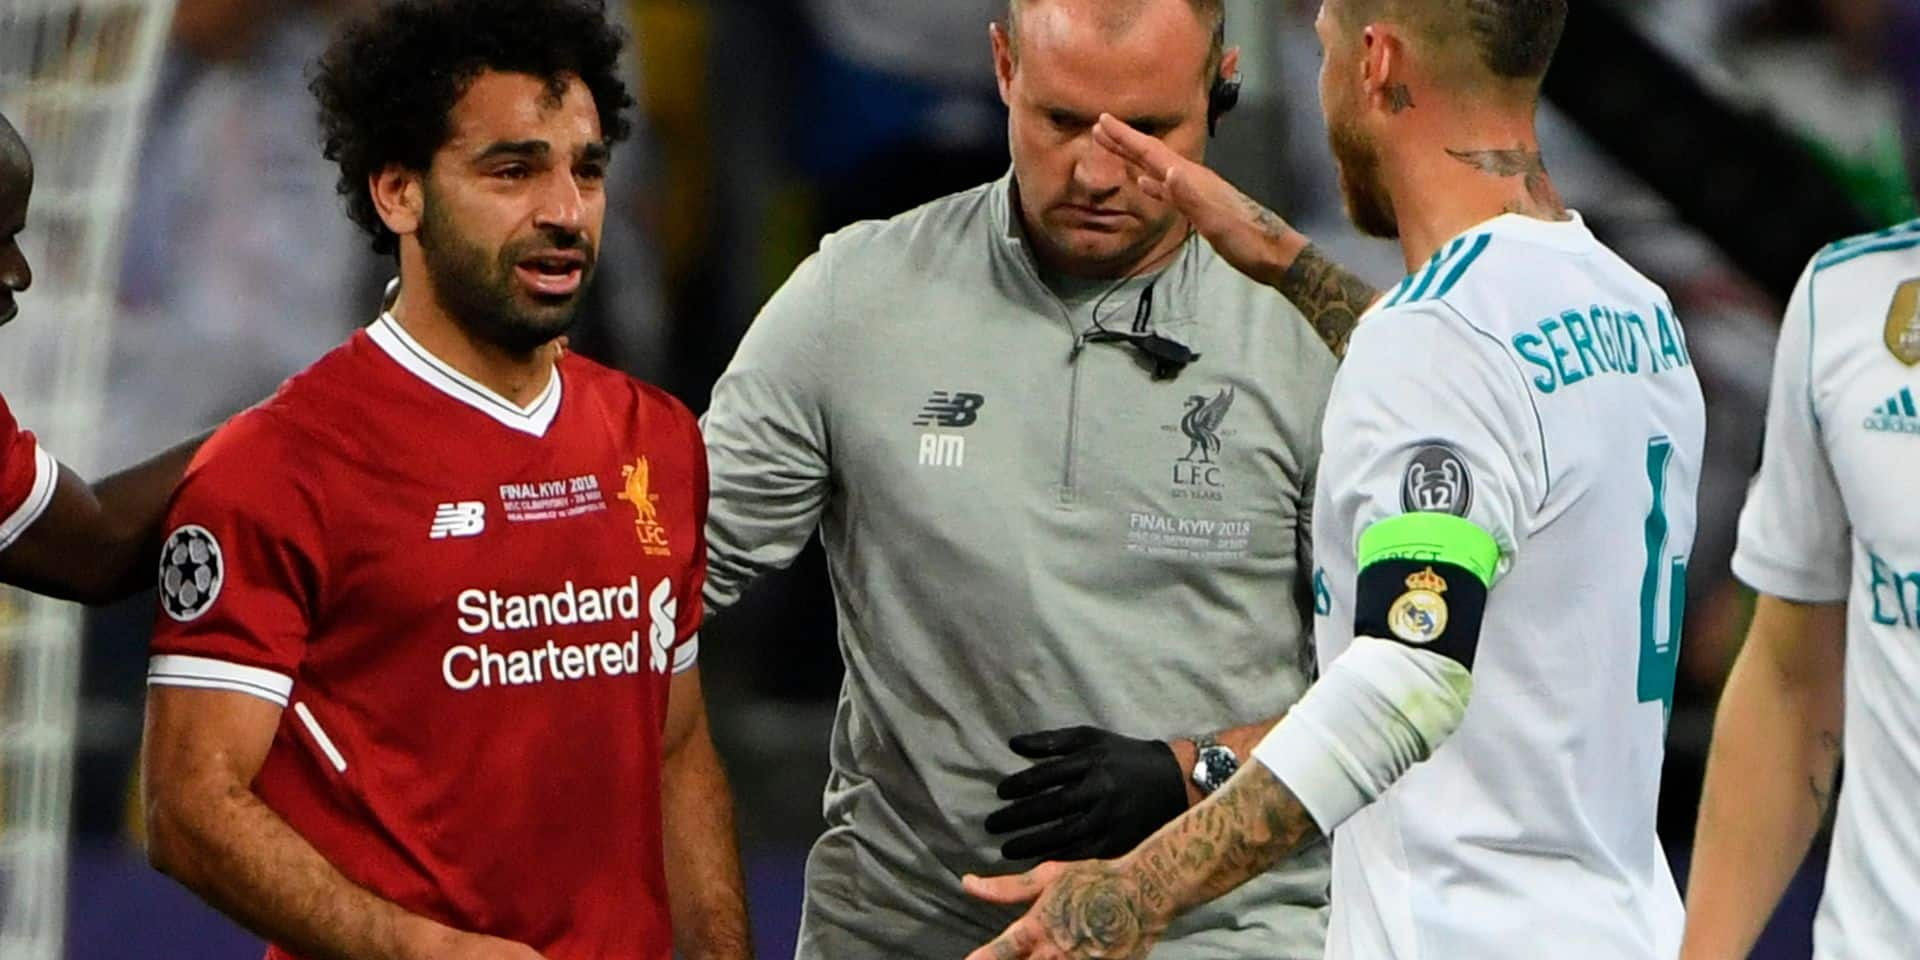 Real Madrid's Spanish defender Sergio Ramos (R) comes over to console Liverpool's Egyptian forward Mohamed Salah (L) who has been forced the leave the pitch after hurting his shoulder in a challenge with Ramos during the UEFA Champions League final football match between Liverpool and Real Madrid at the Olympic Stadium in Kiev, Ukraine on May 26, 2018. / AFP PHOTO / Paul ELLIS